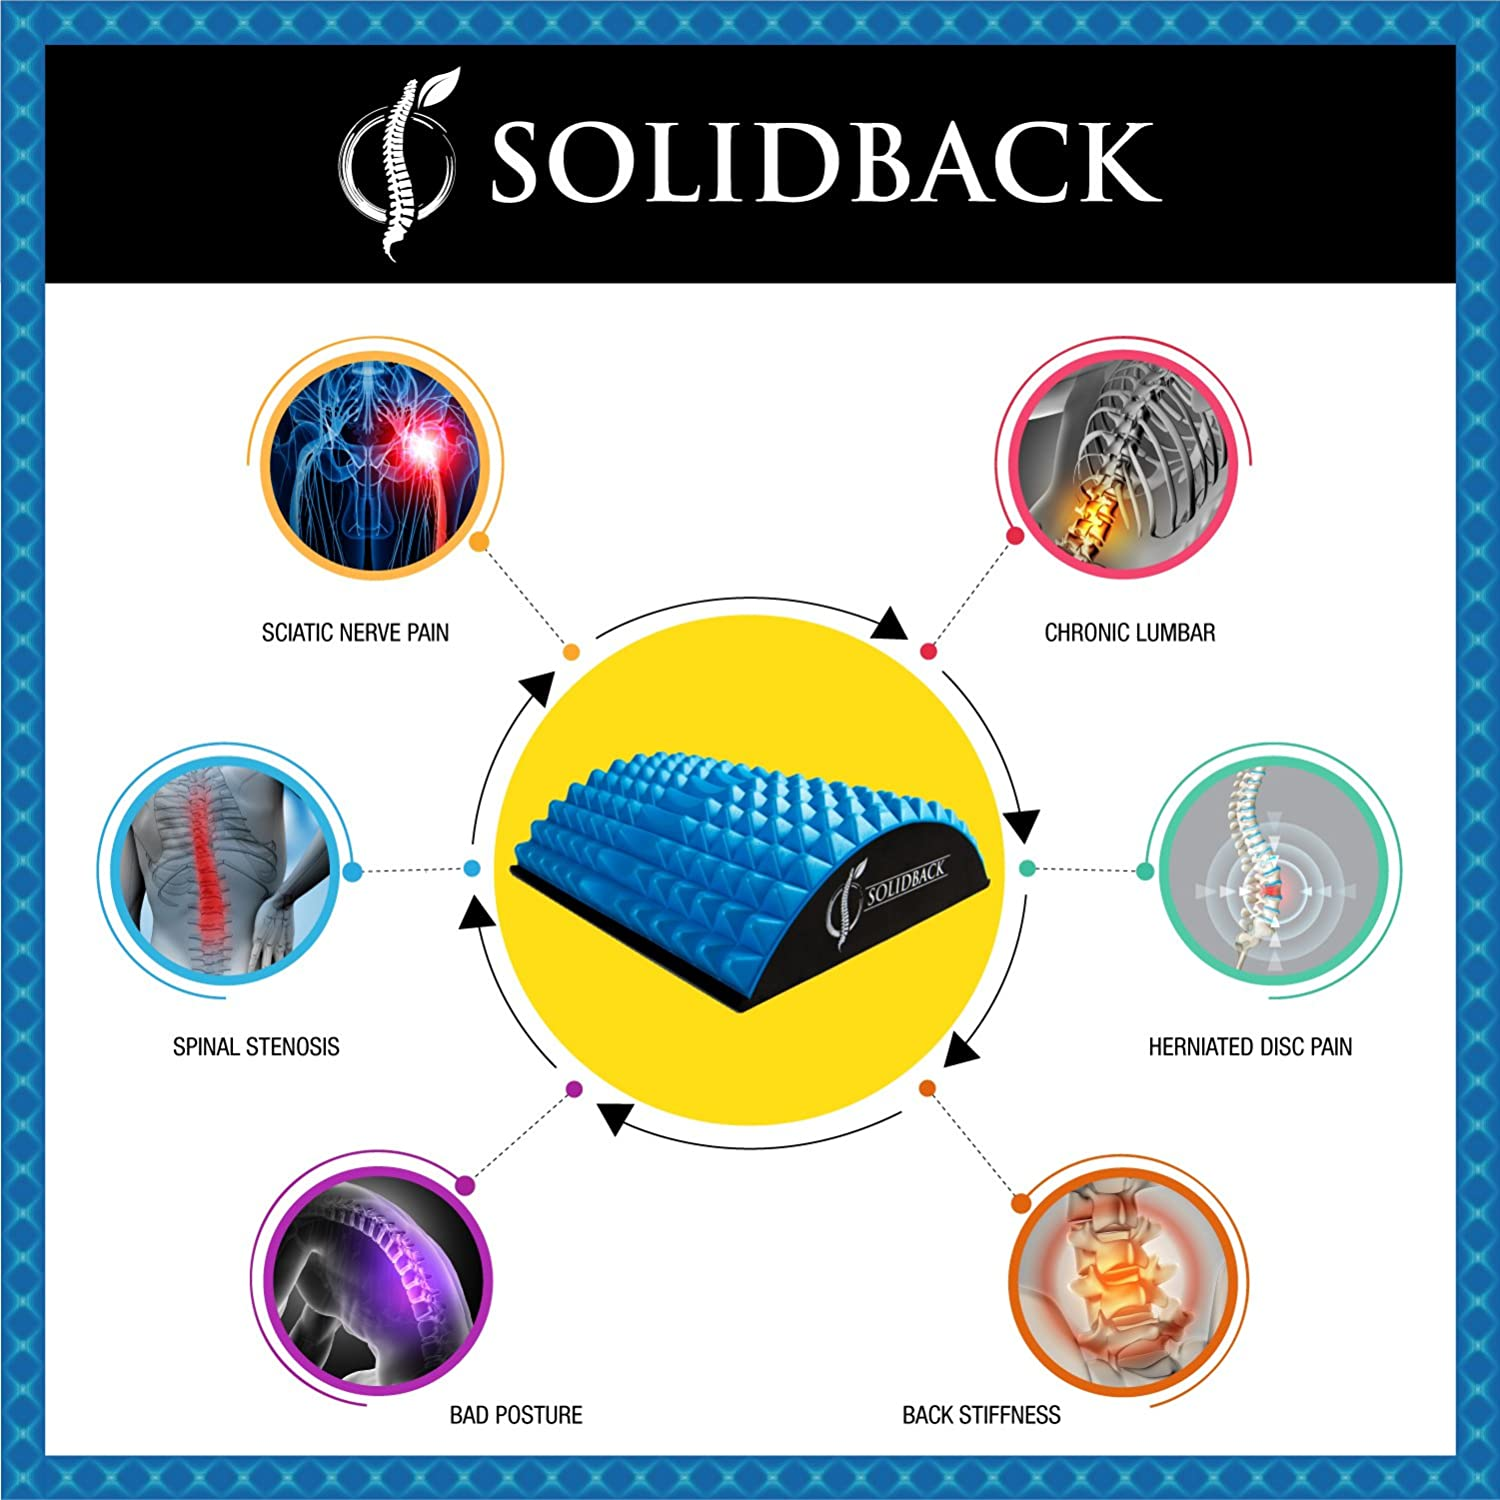 SOLIDBACK | Lower Back Pain Relief Treatment Stretcher | Chronic Lumbar  Support | Herniated Disc | Sciatica Nerve | Spinal Stenosis | Posture